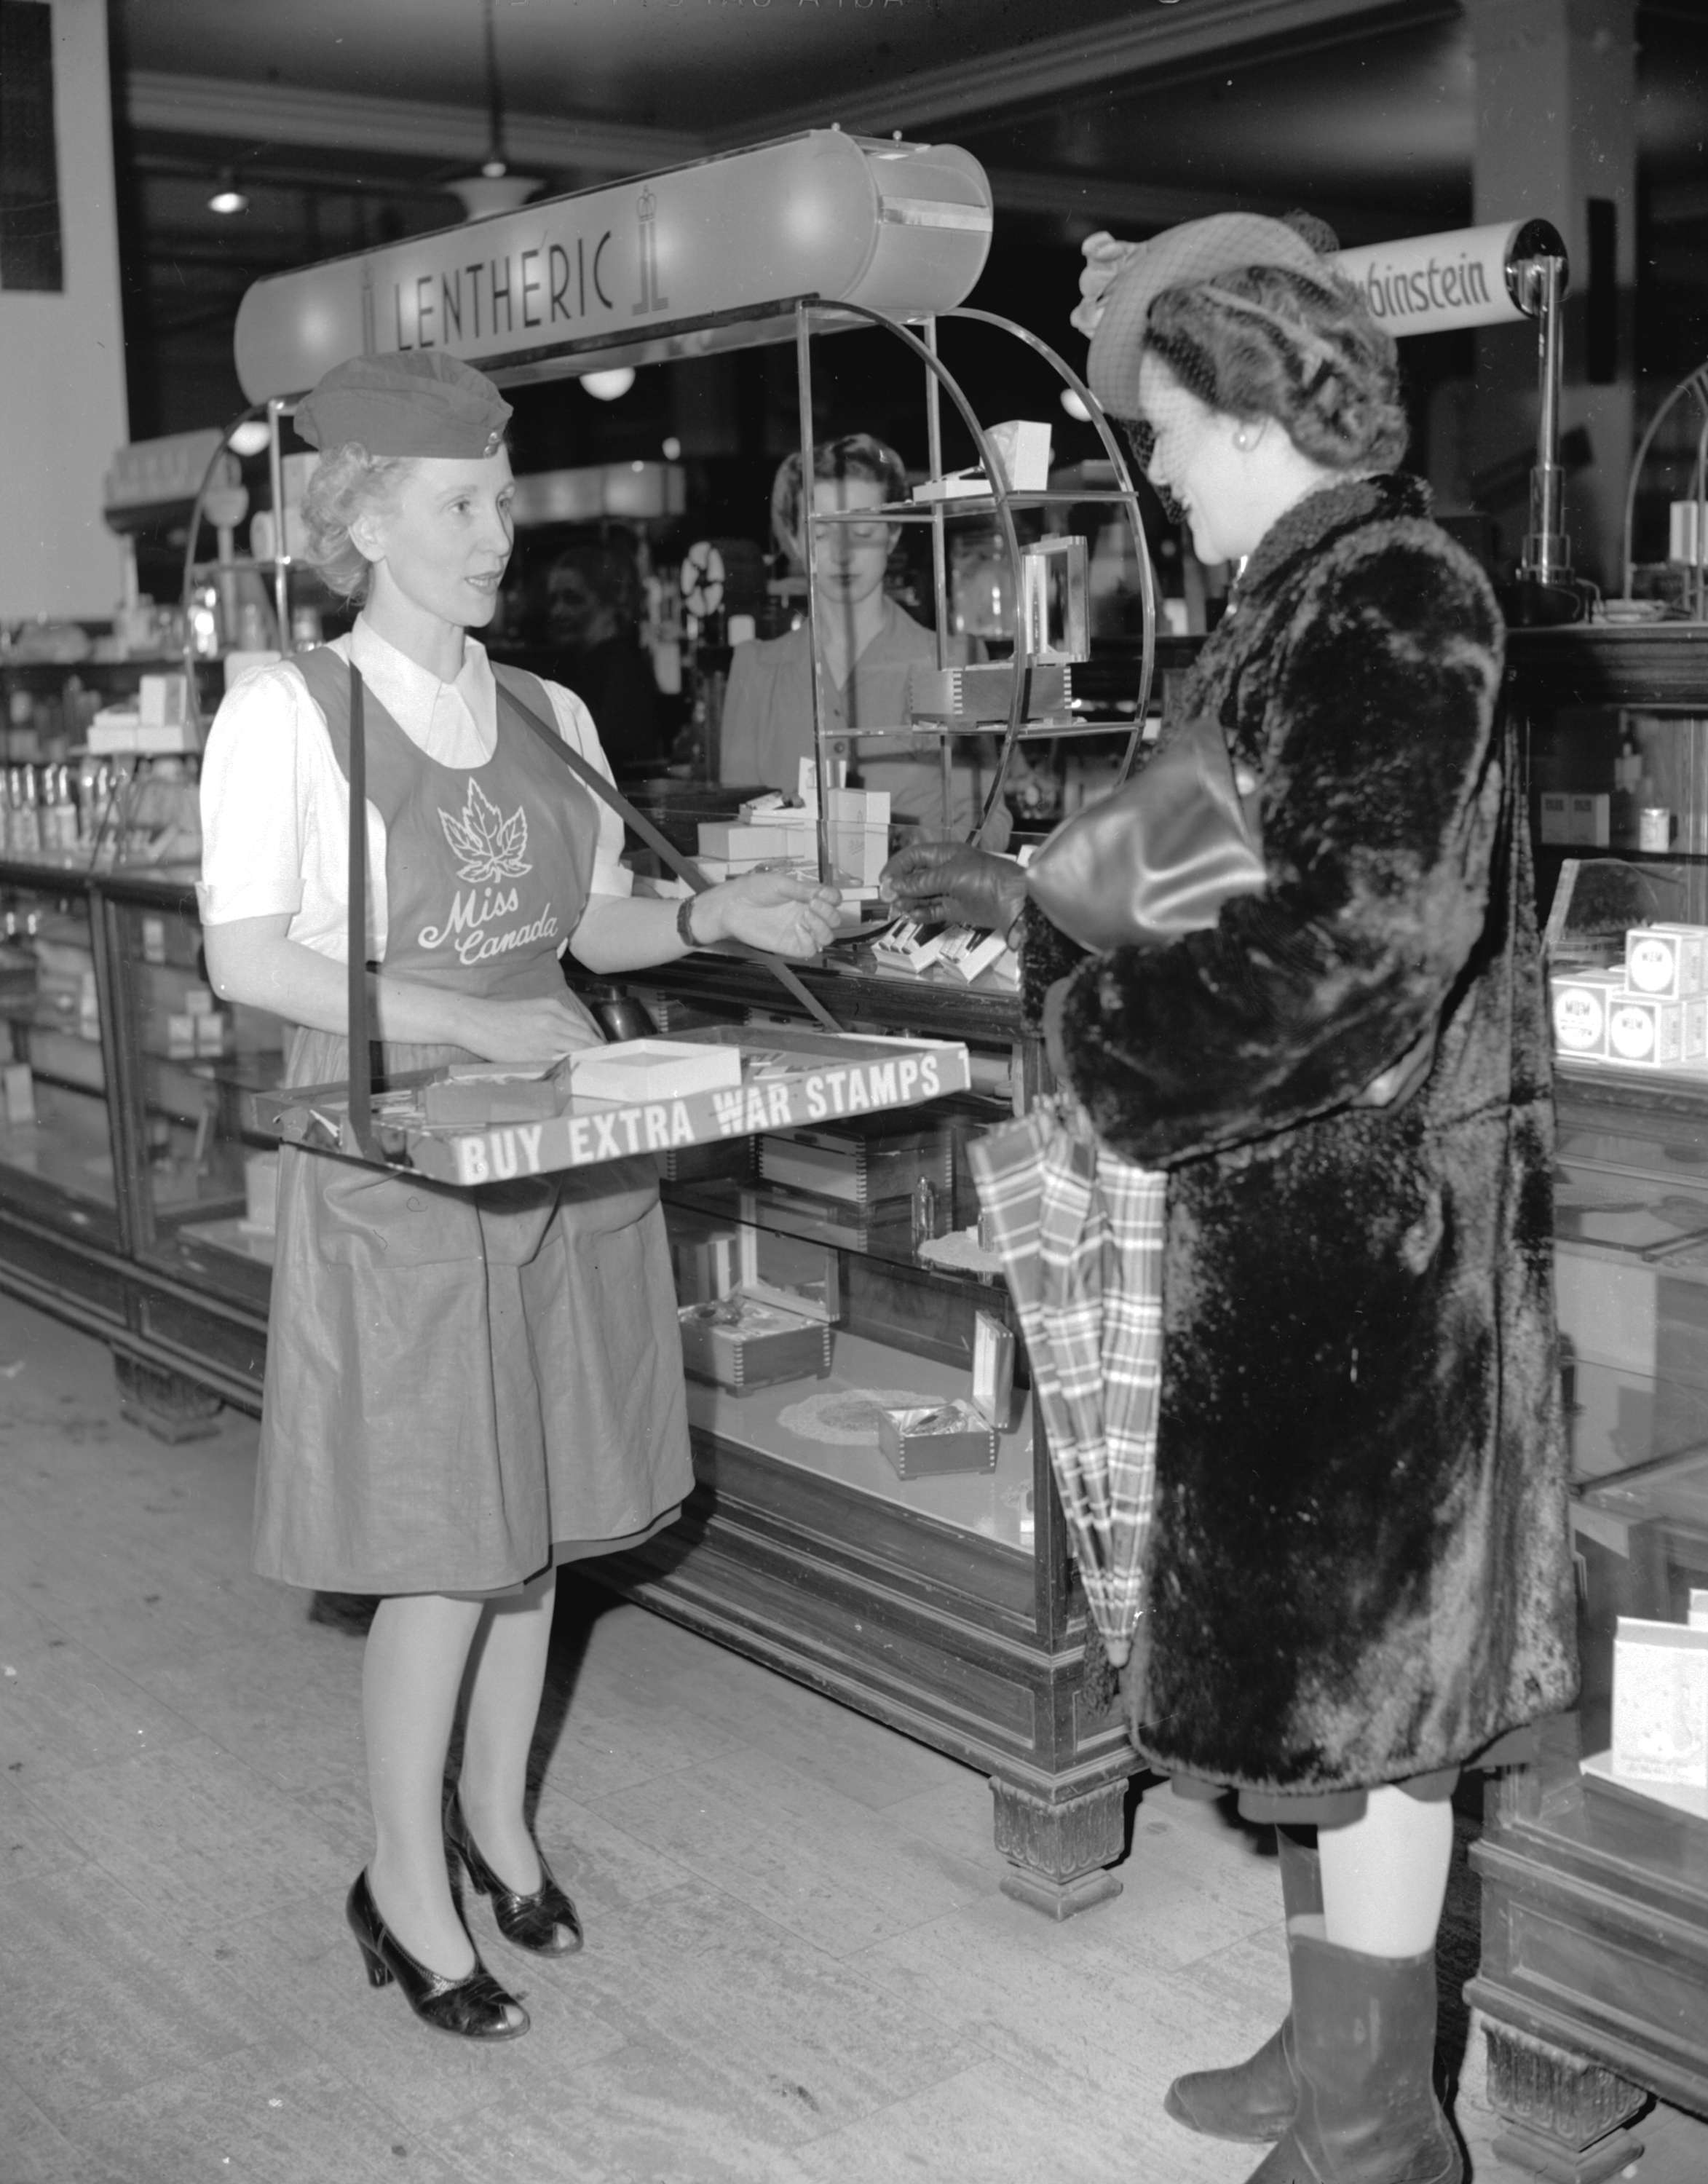 A saleswoman speaking to a customer at Spencer's Department Store in 1944 (Donn Williams)